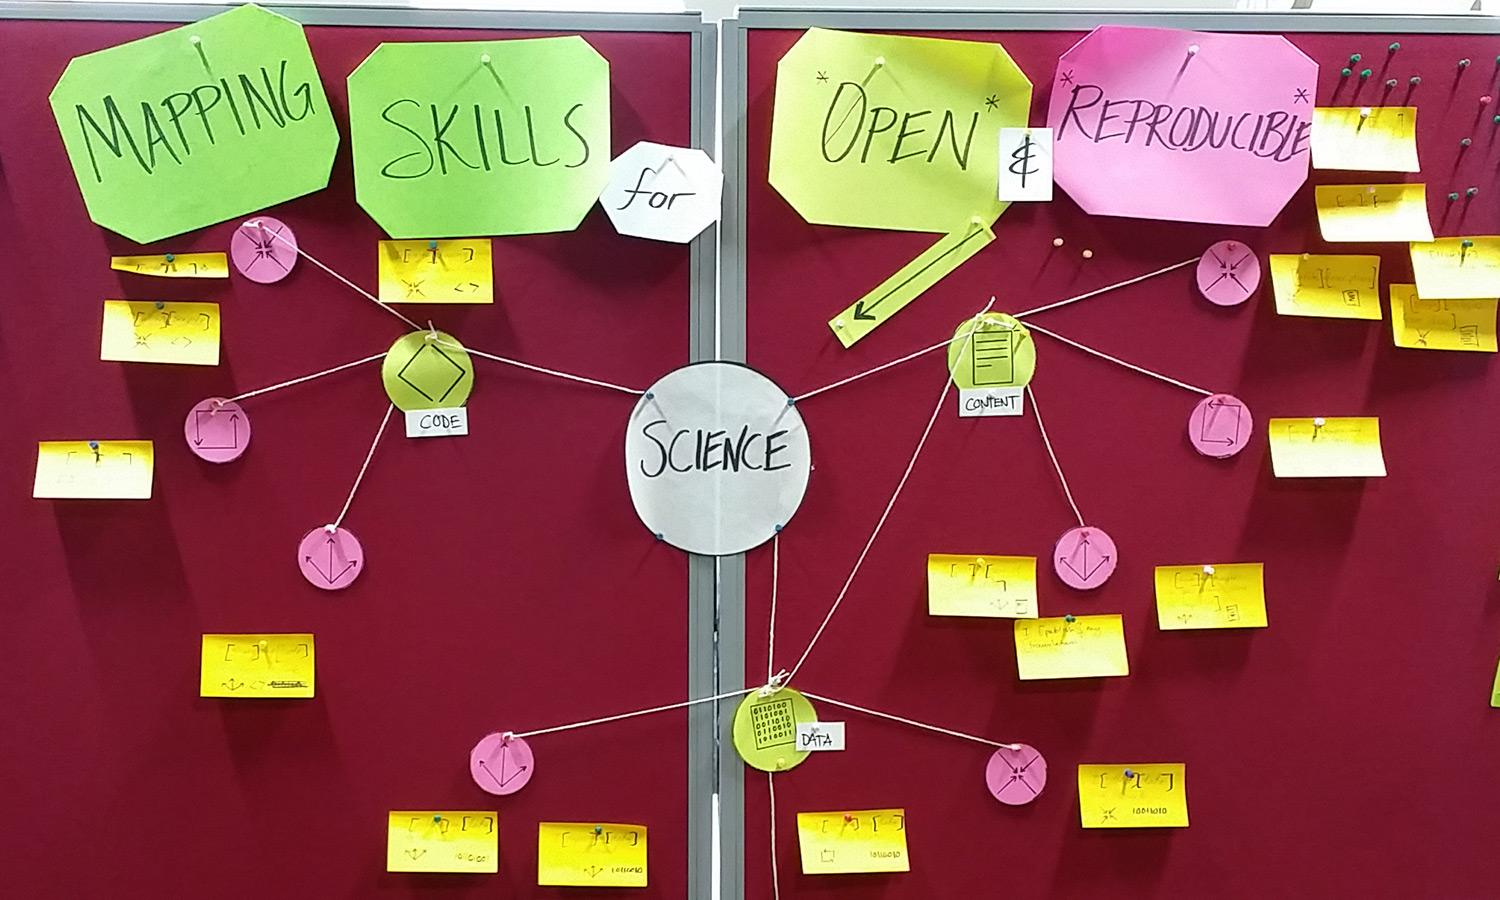 Bulletin board with idea map of science skills